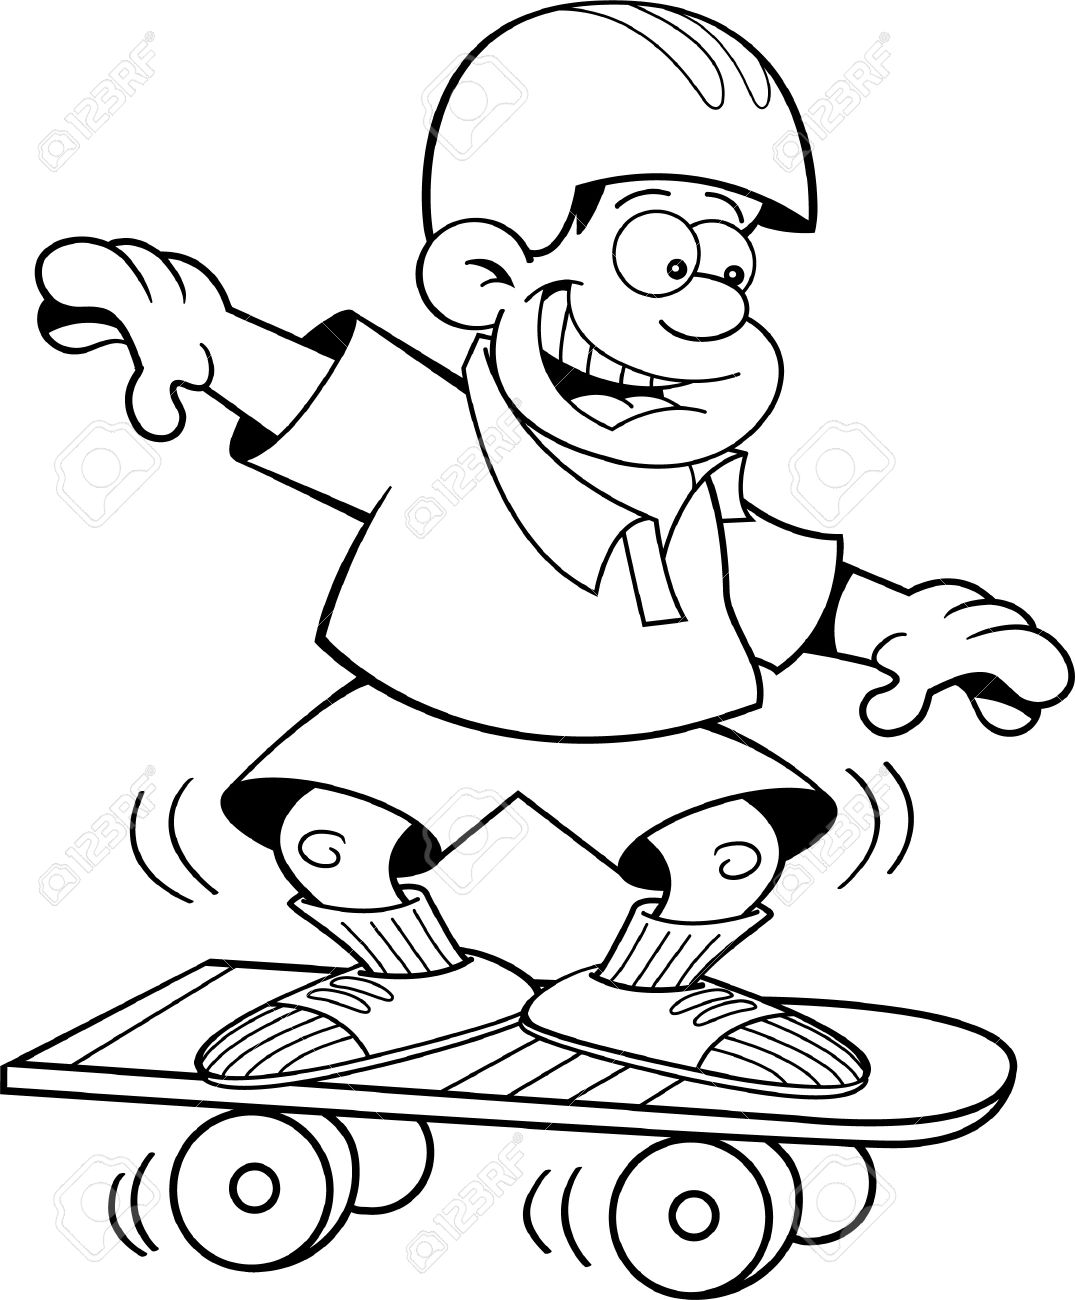 Skateboard clipart black and white 1 » Clipart Station.